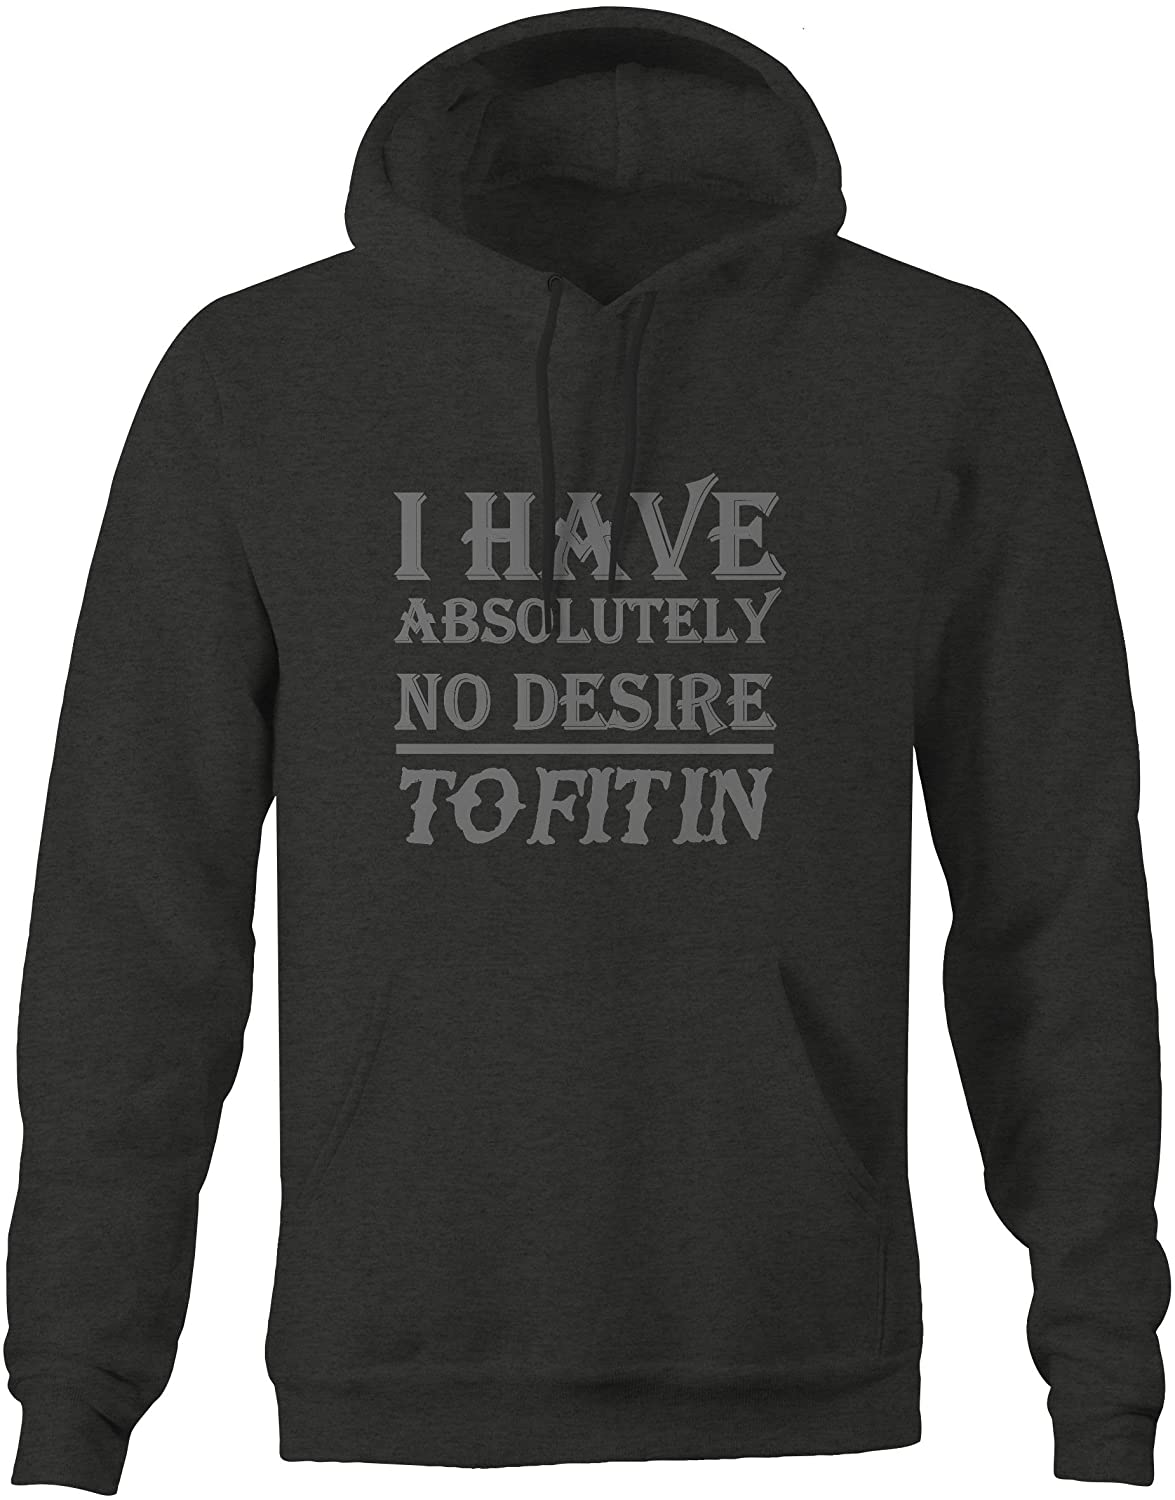 4XL Stealth I Have Absolutely NO DESIRE TO FIT IN Sweatshirt